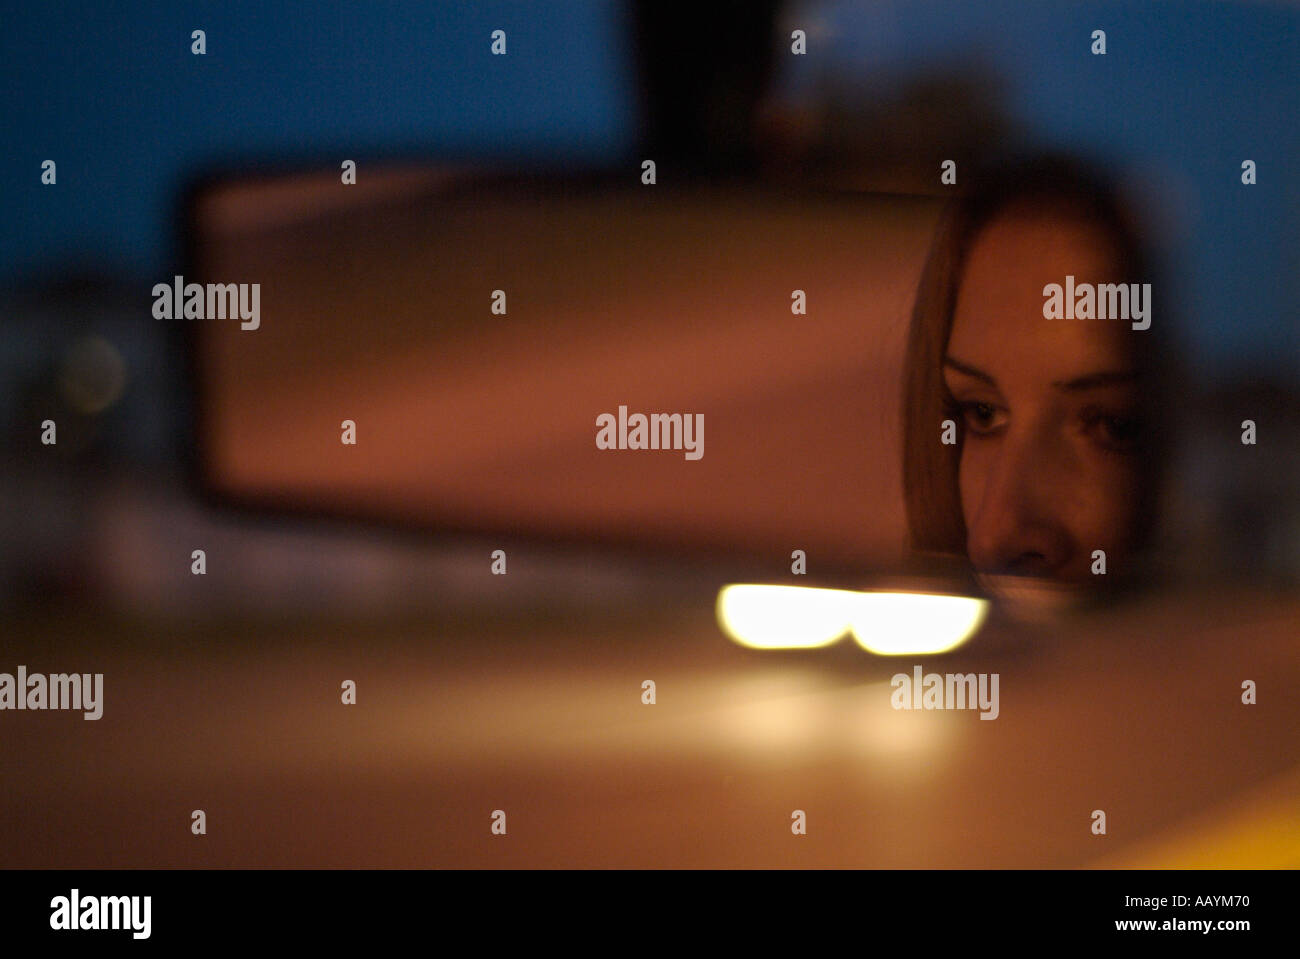 Rear View Mirror with Reflection of a Womans Face in a Car Driving Along a Road at Night Stock Photo